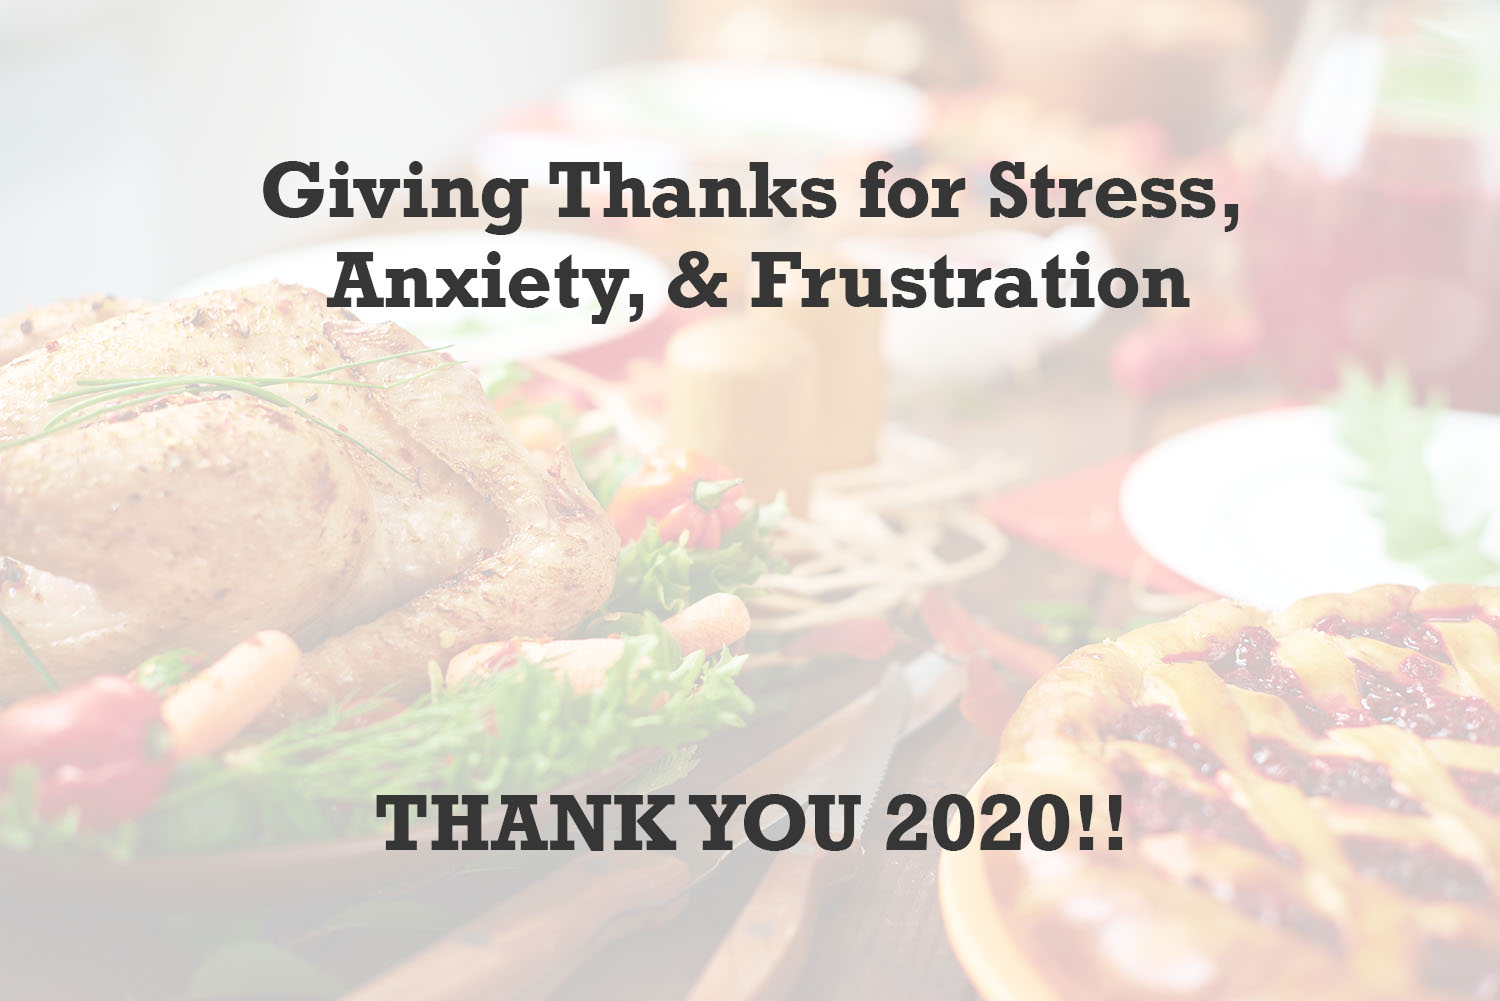 Giving Thanks for Stress, Anxiety & Frustration